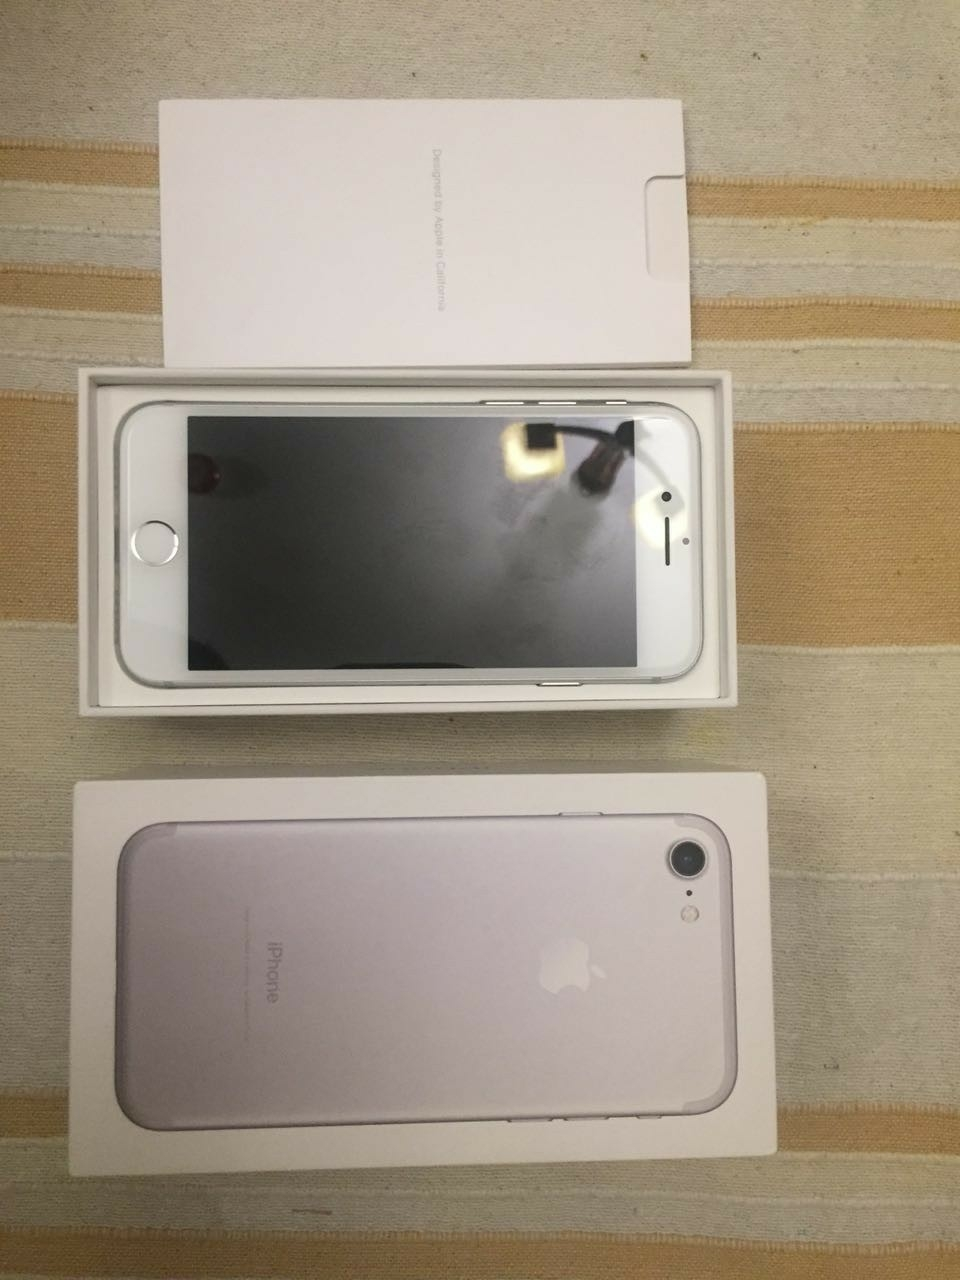 Iphone 7 32GB silver warranty with box and all accessories. 8 months warranty